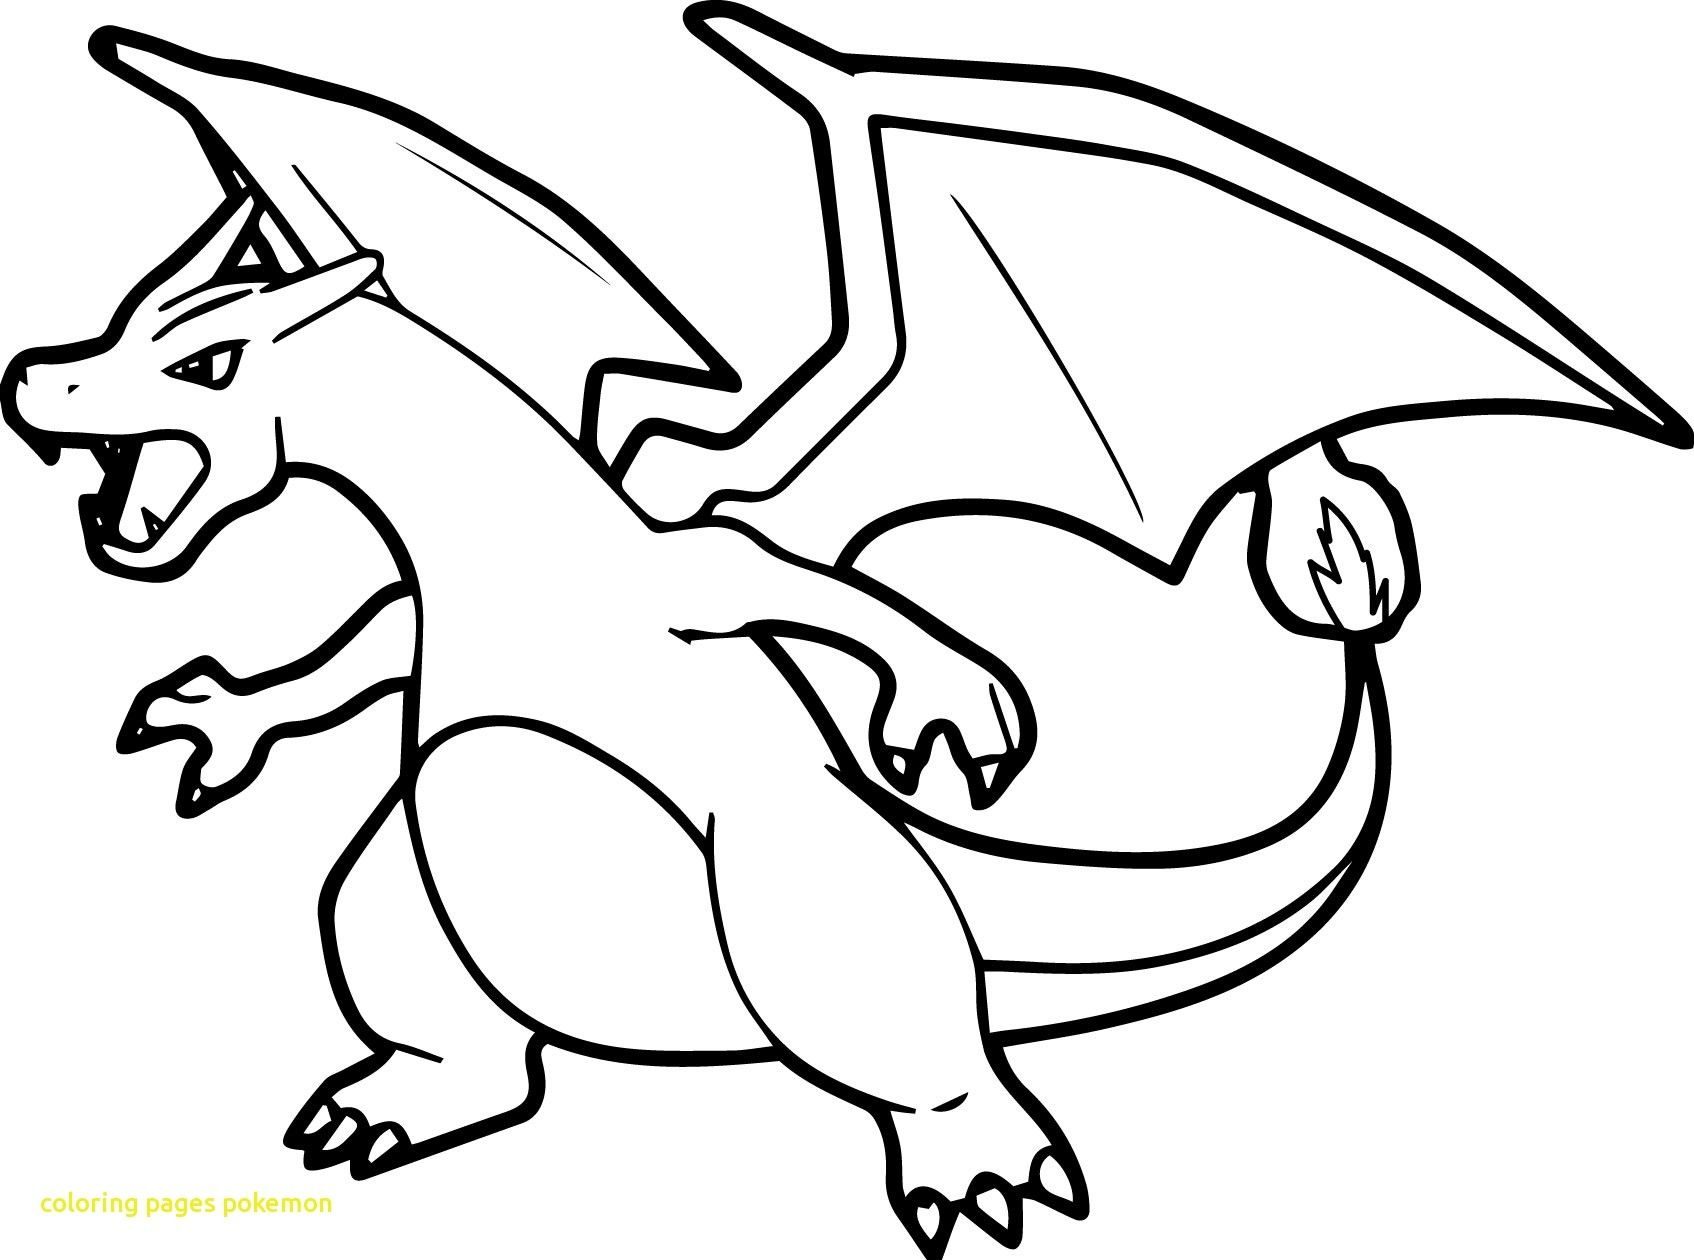 New Pokemon Charizard Coloring Pages Collection Printable